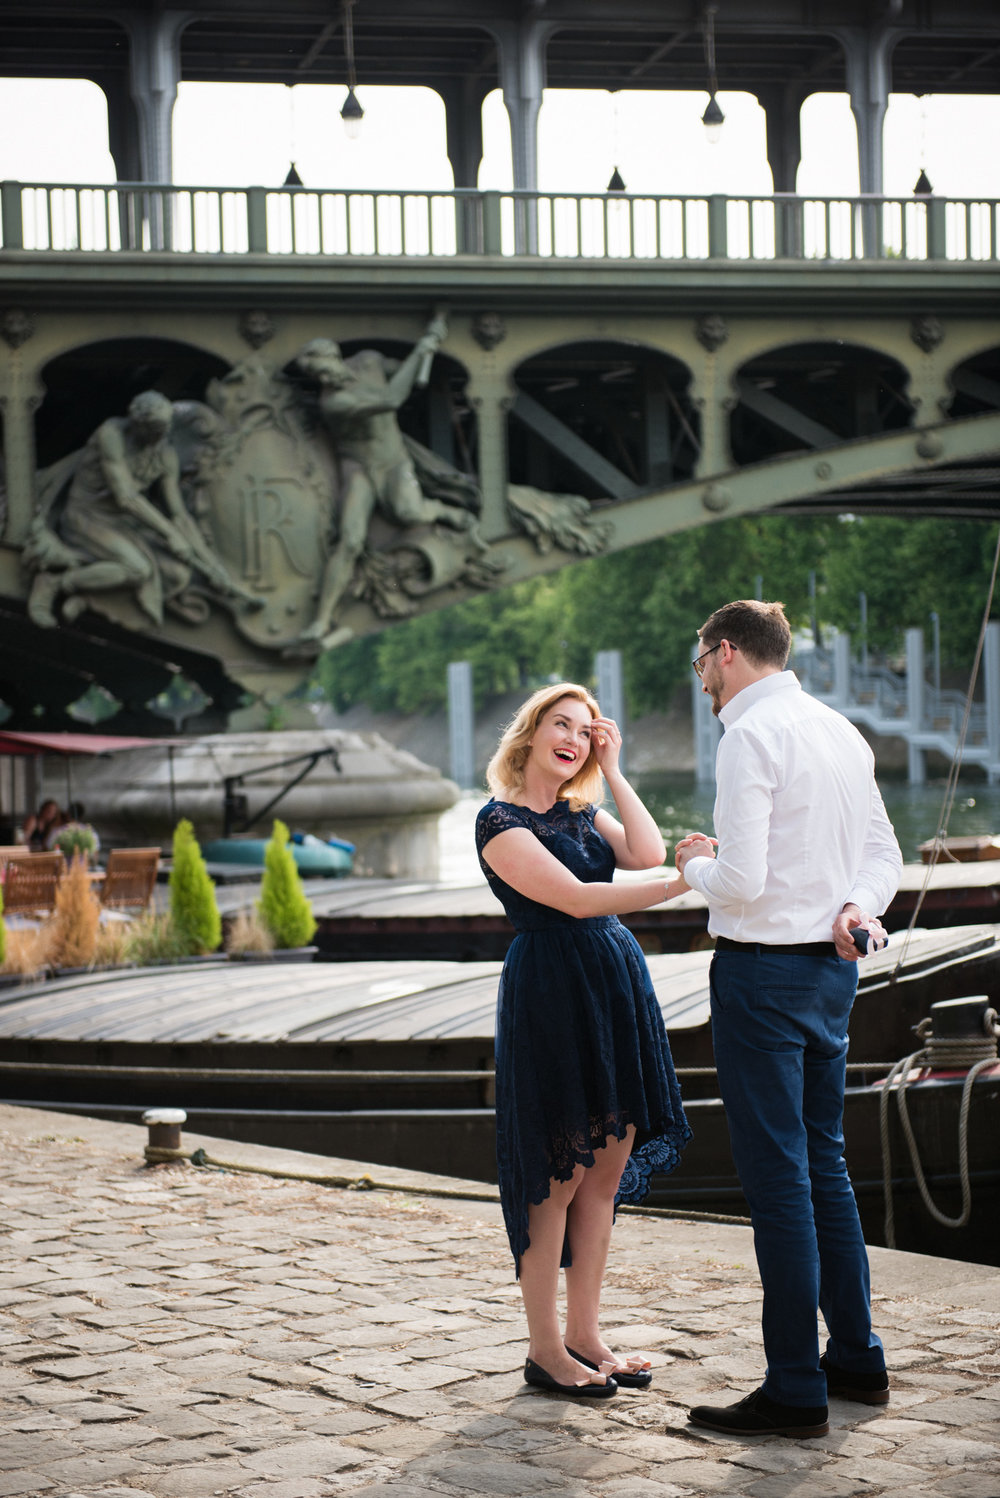 Surprise Proposal in Paris.jpg